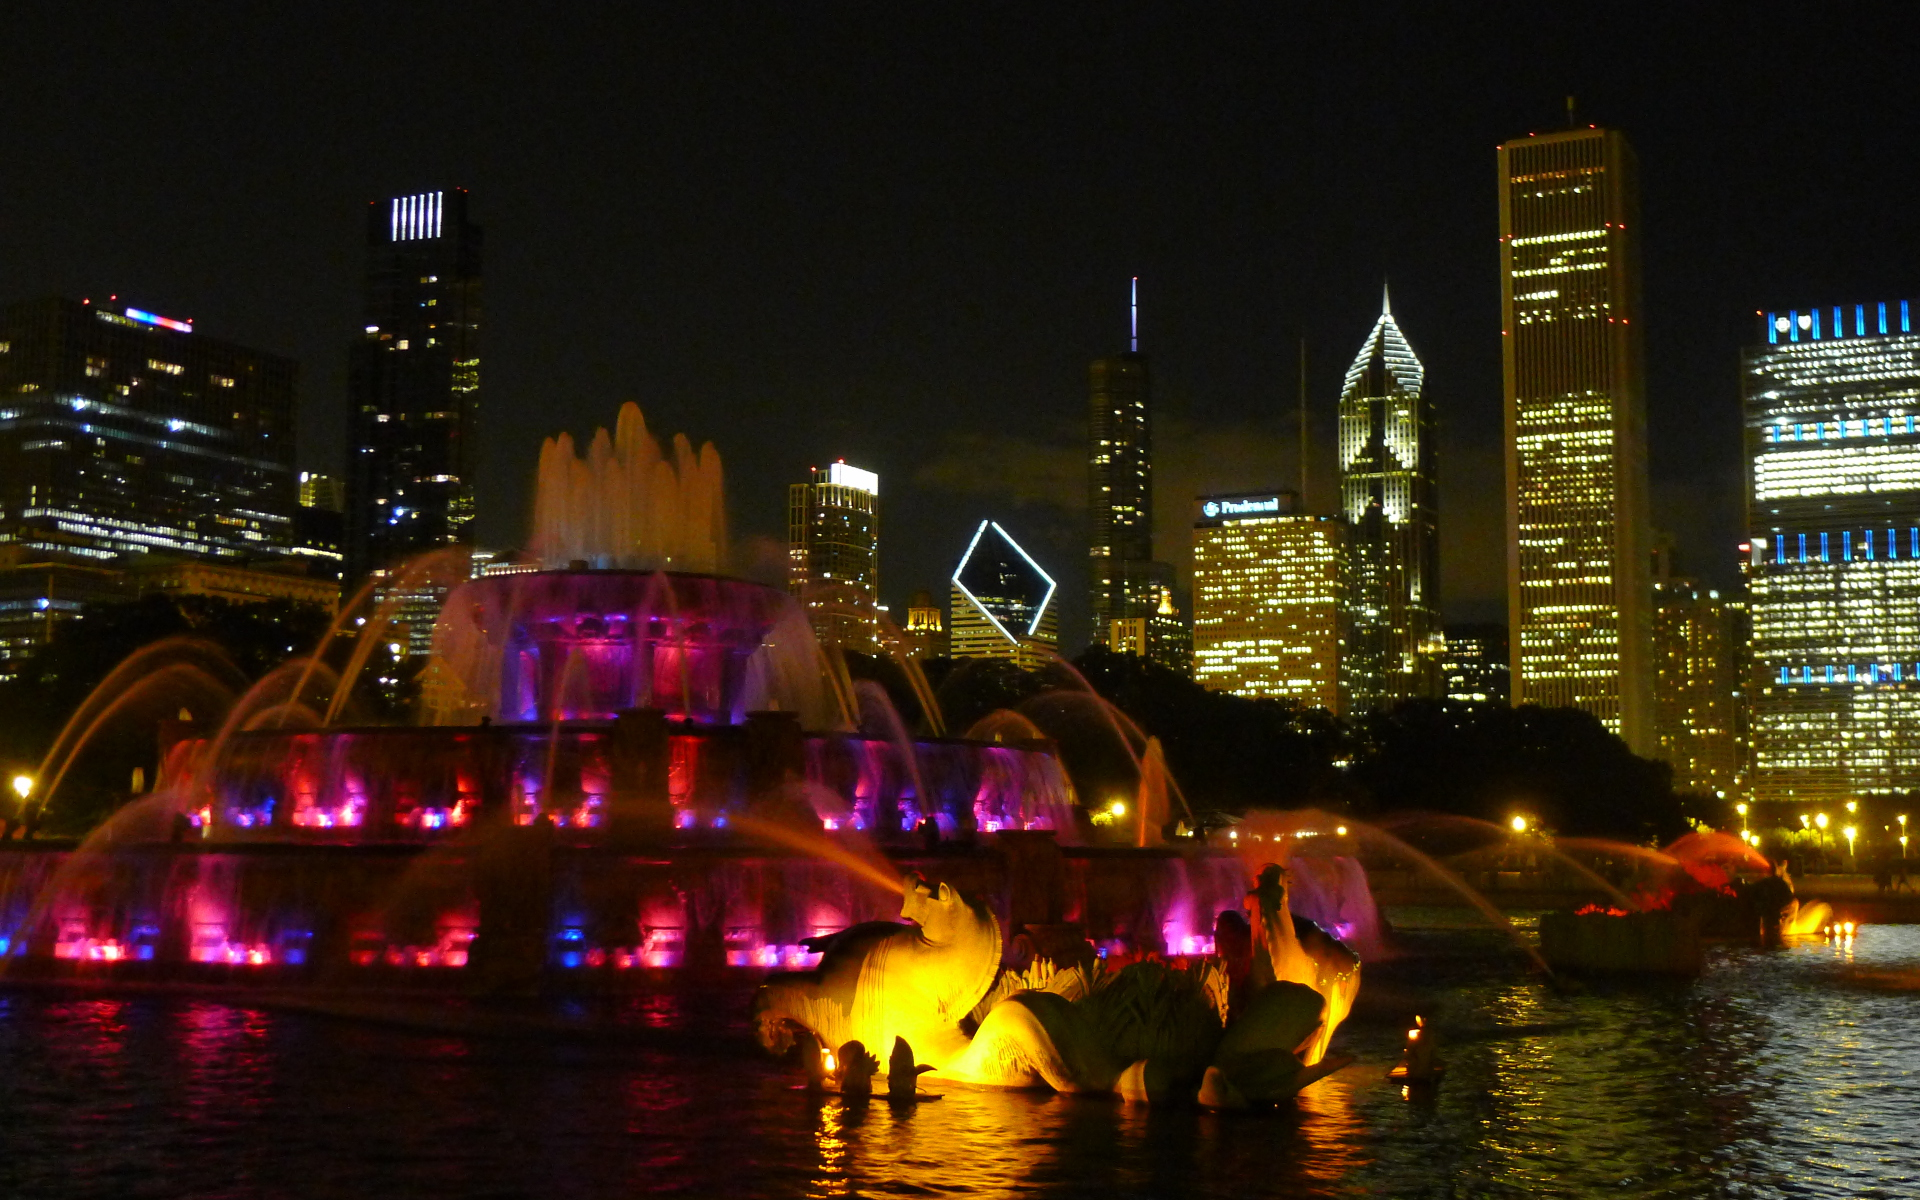 Buckingham Fountain by night